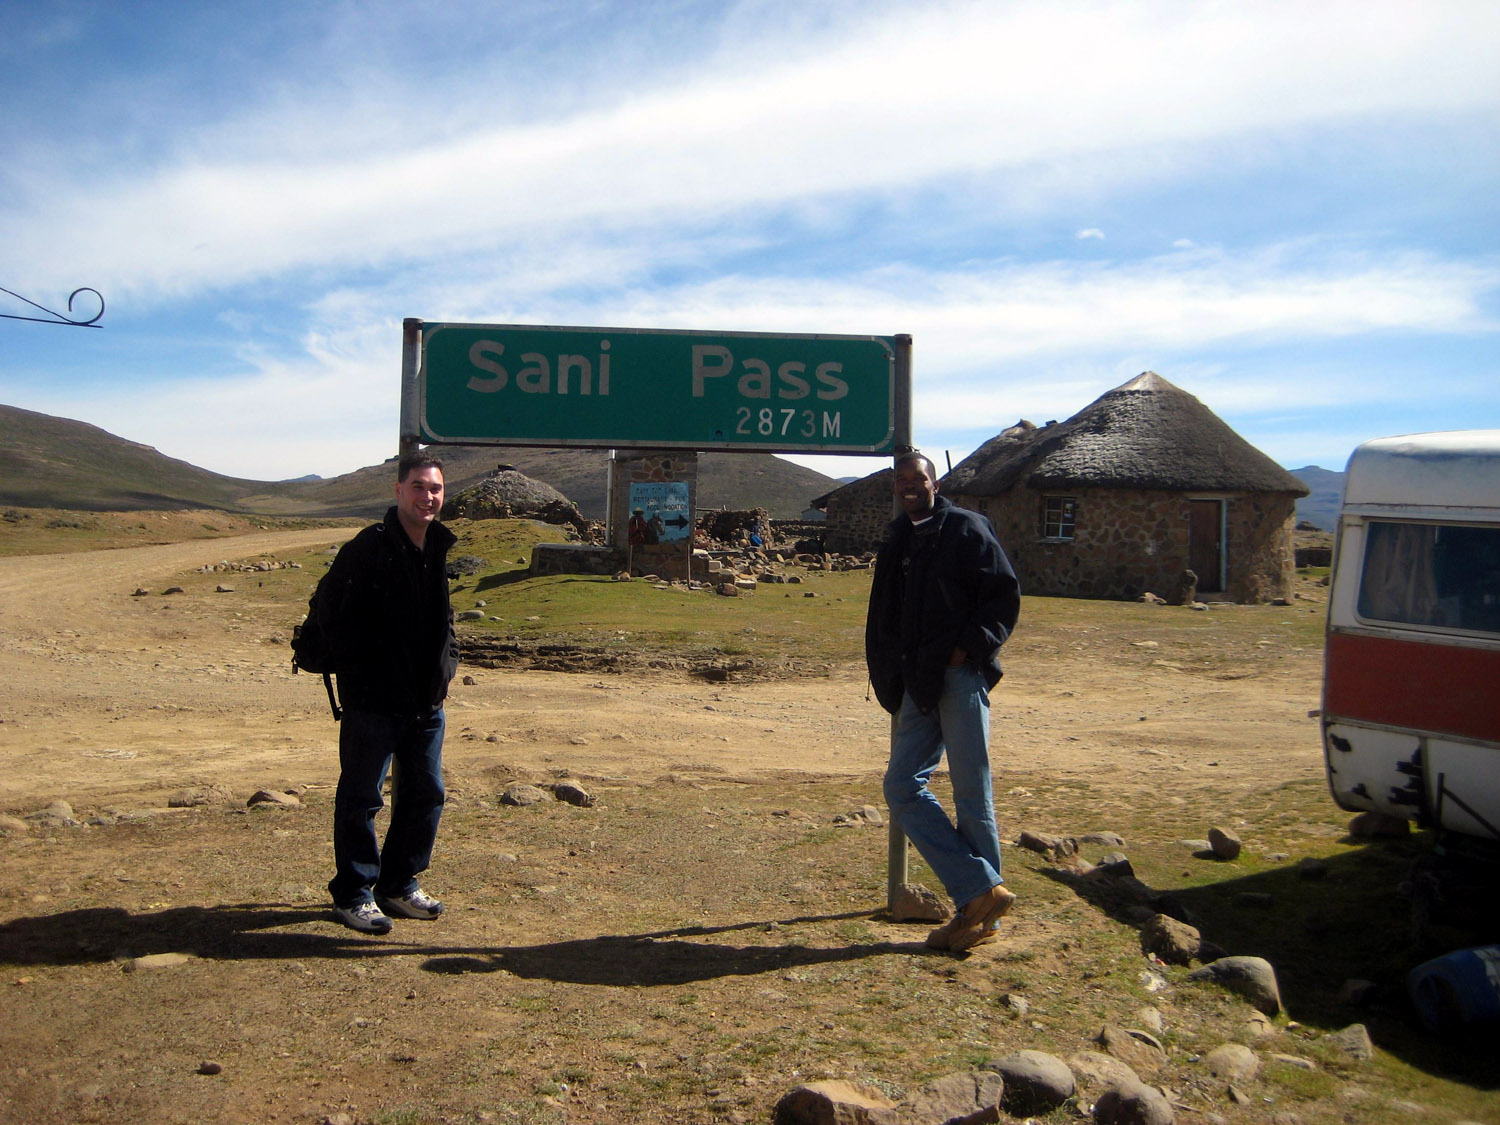 Posing at the summit of the Sani Pass - finally in Lesotho